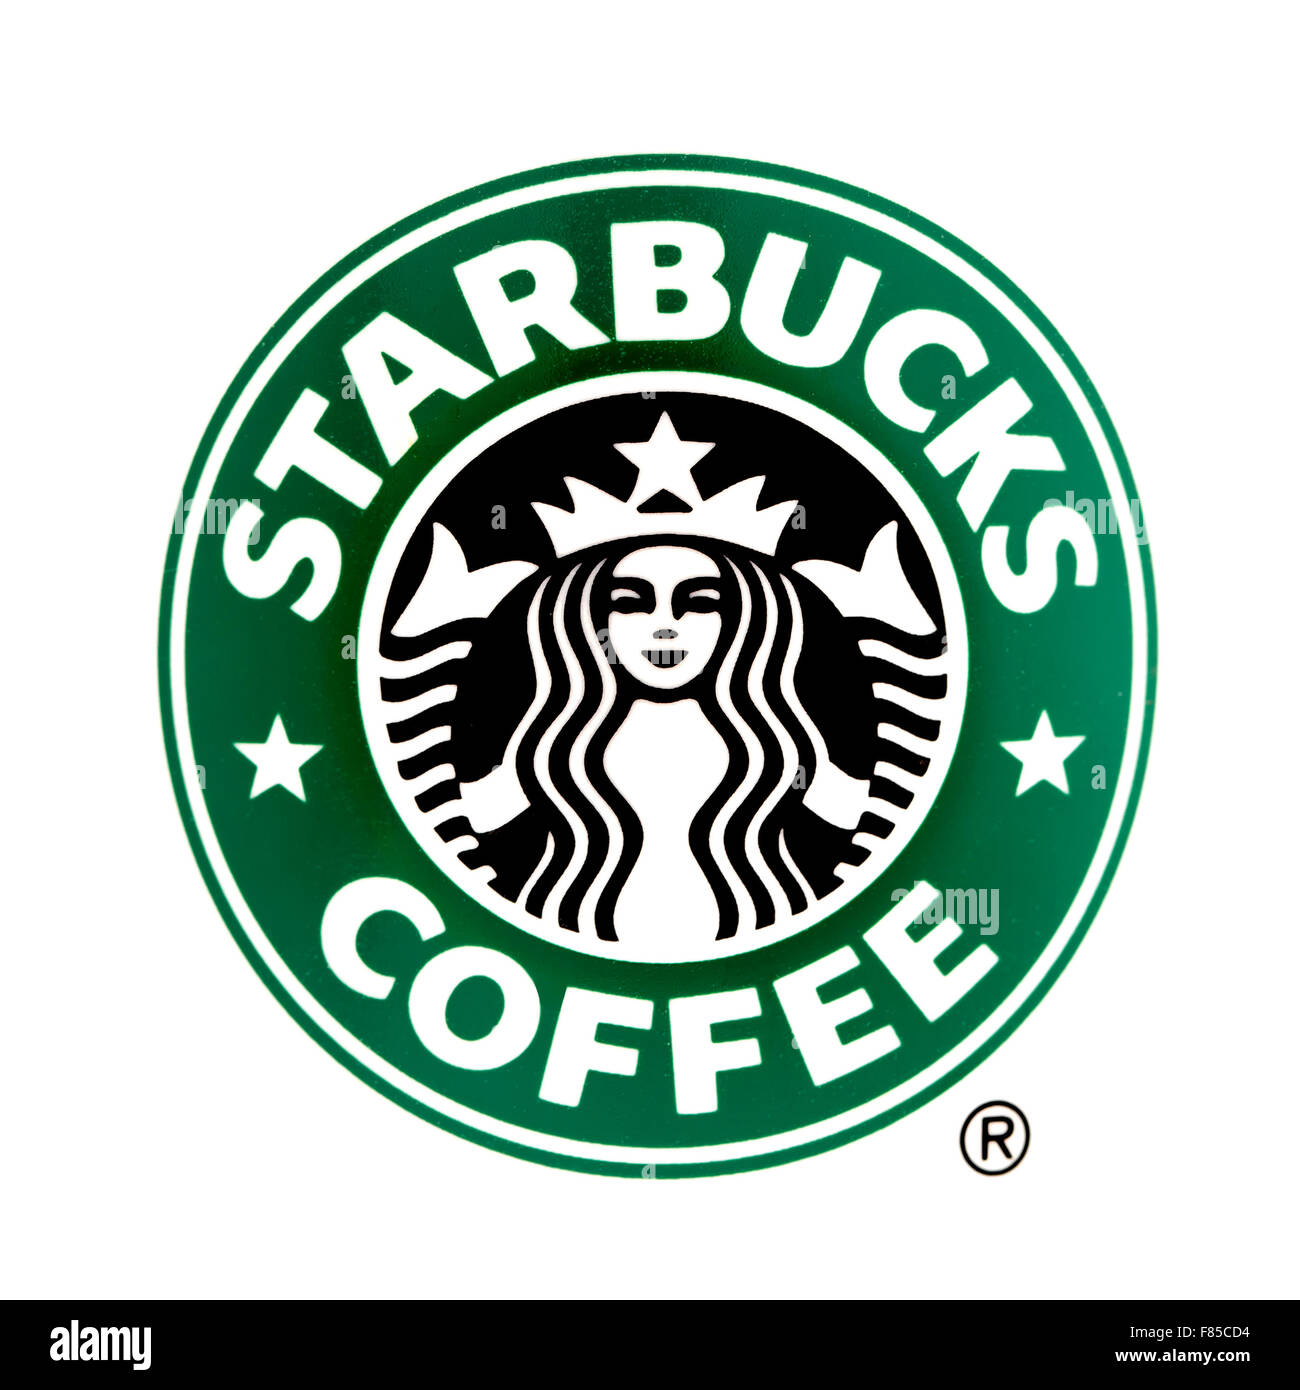 Starbucks logo on a White Background, Starbucks is the largest coffeehouse company in the world - Stock Image